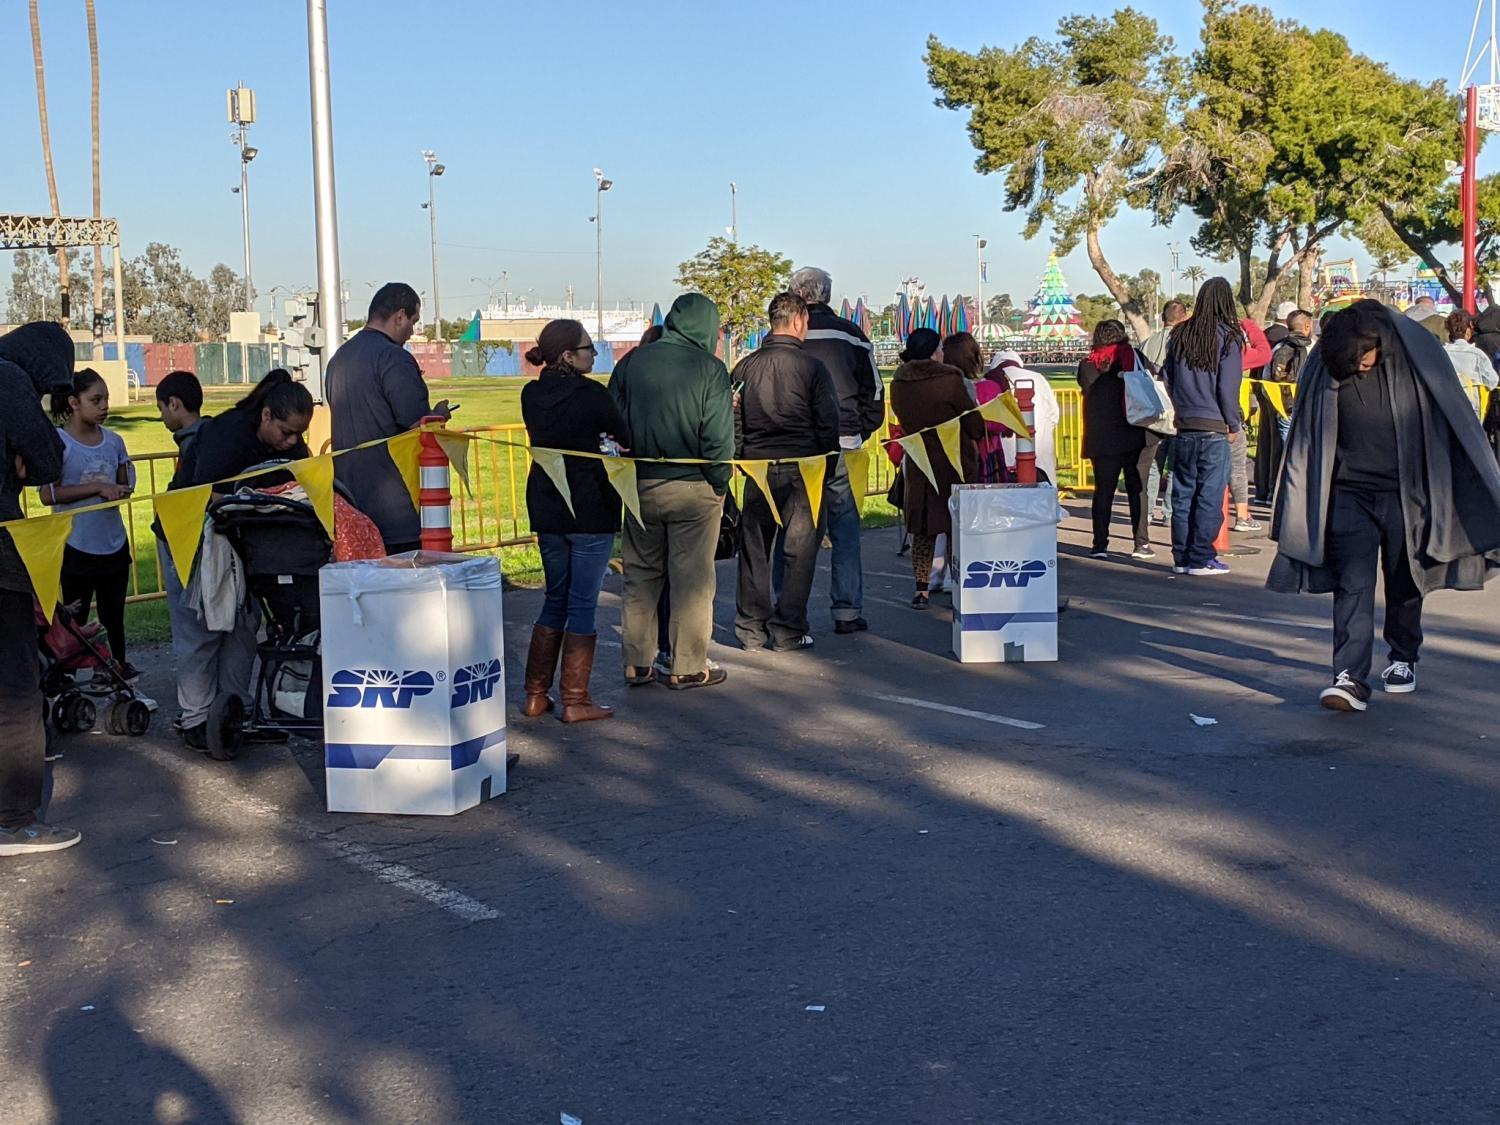 People waited in line overnight to get into Veterans Memorial Coliseum in Phoenix for a free dental work event.